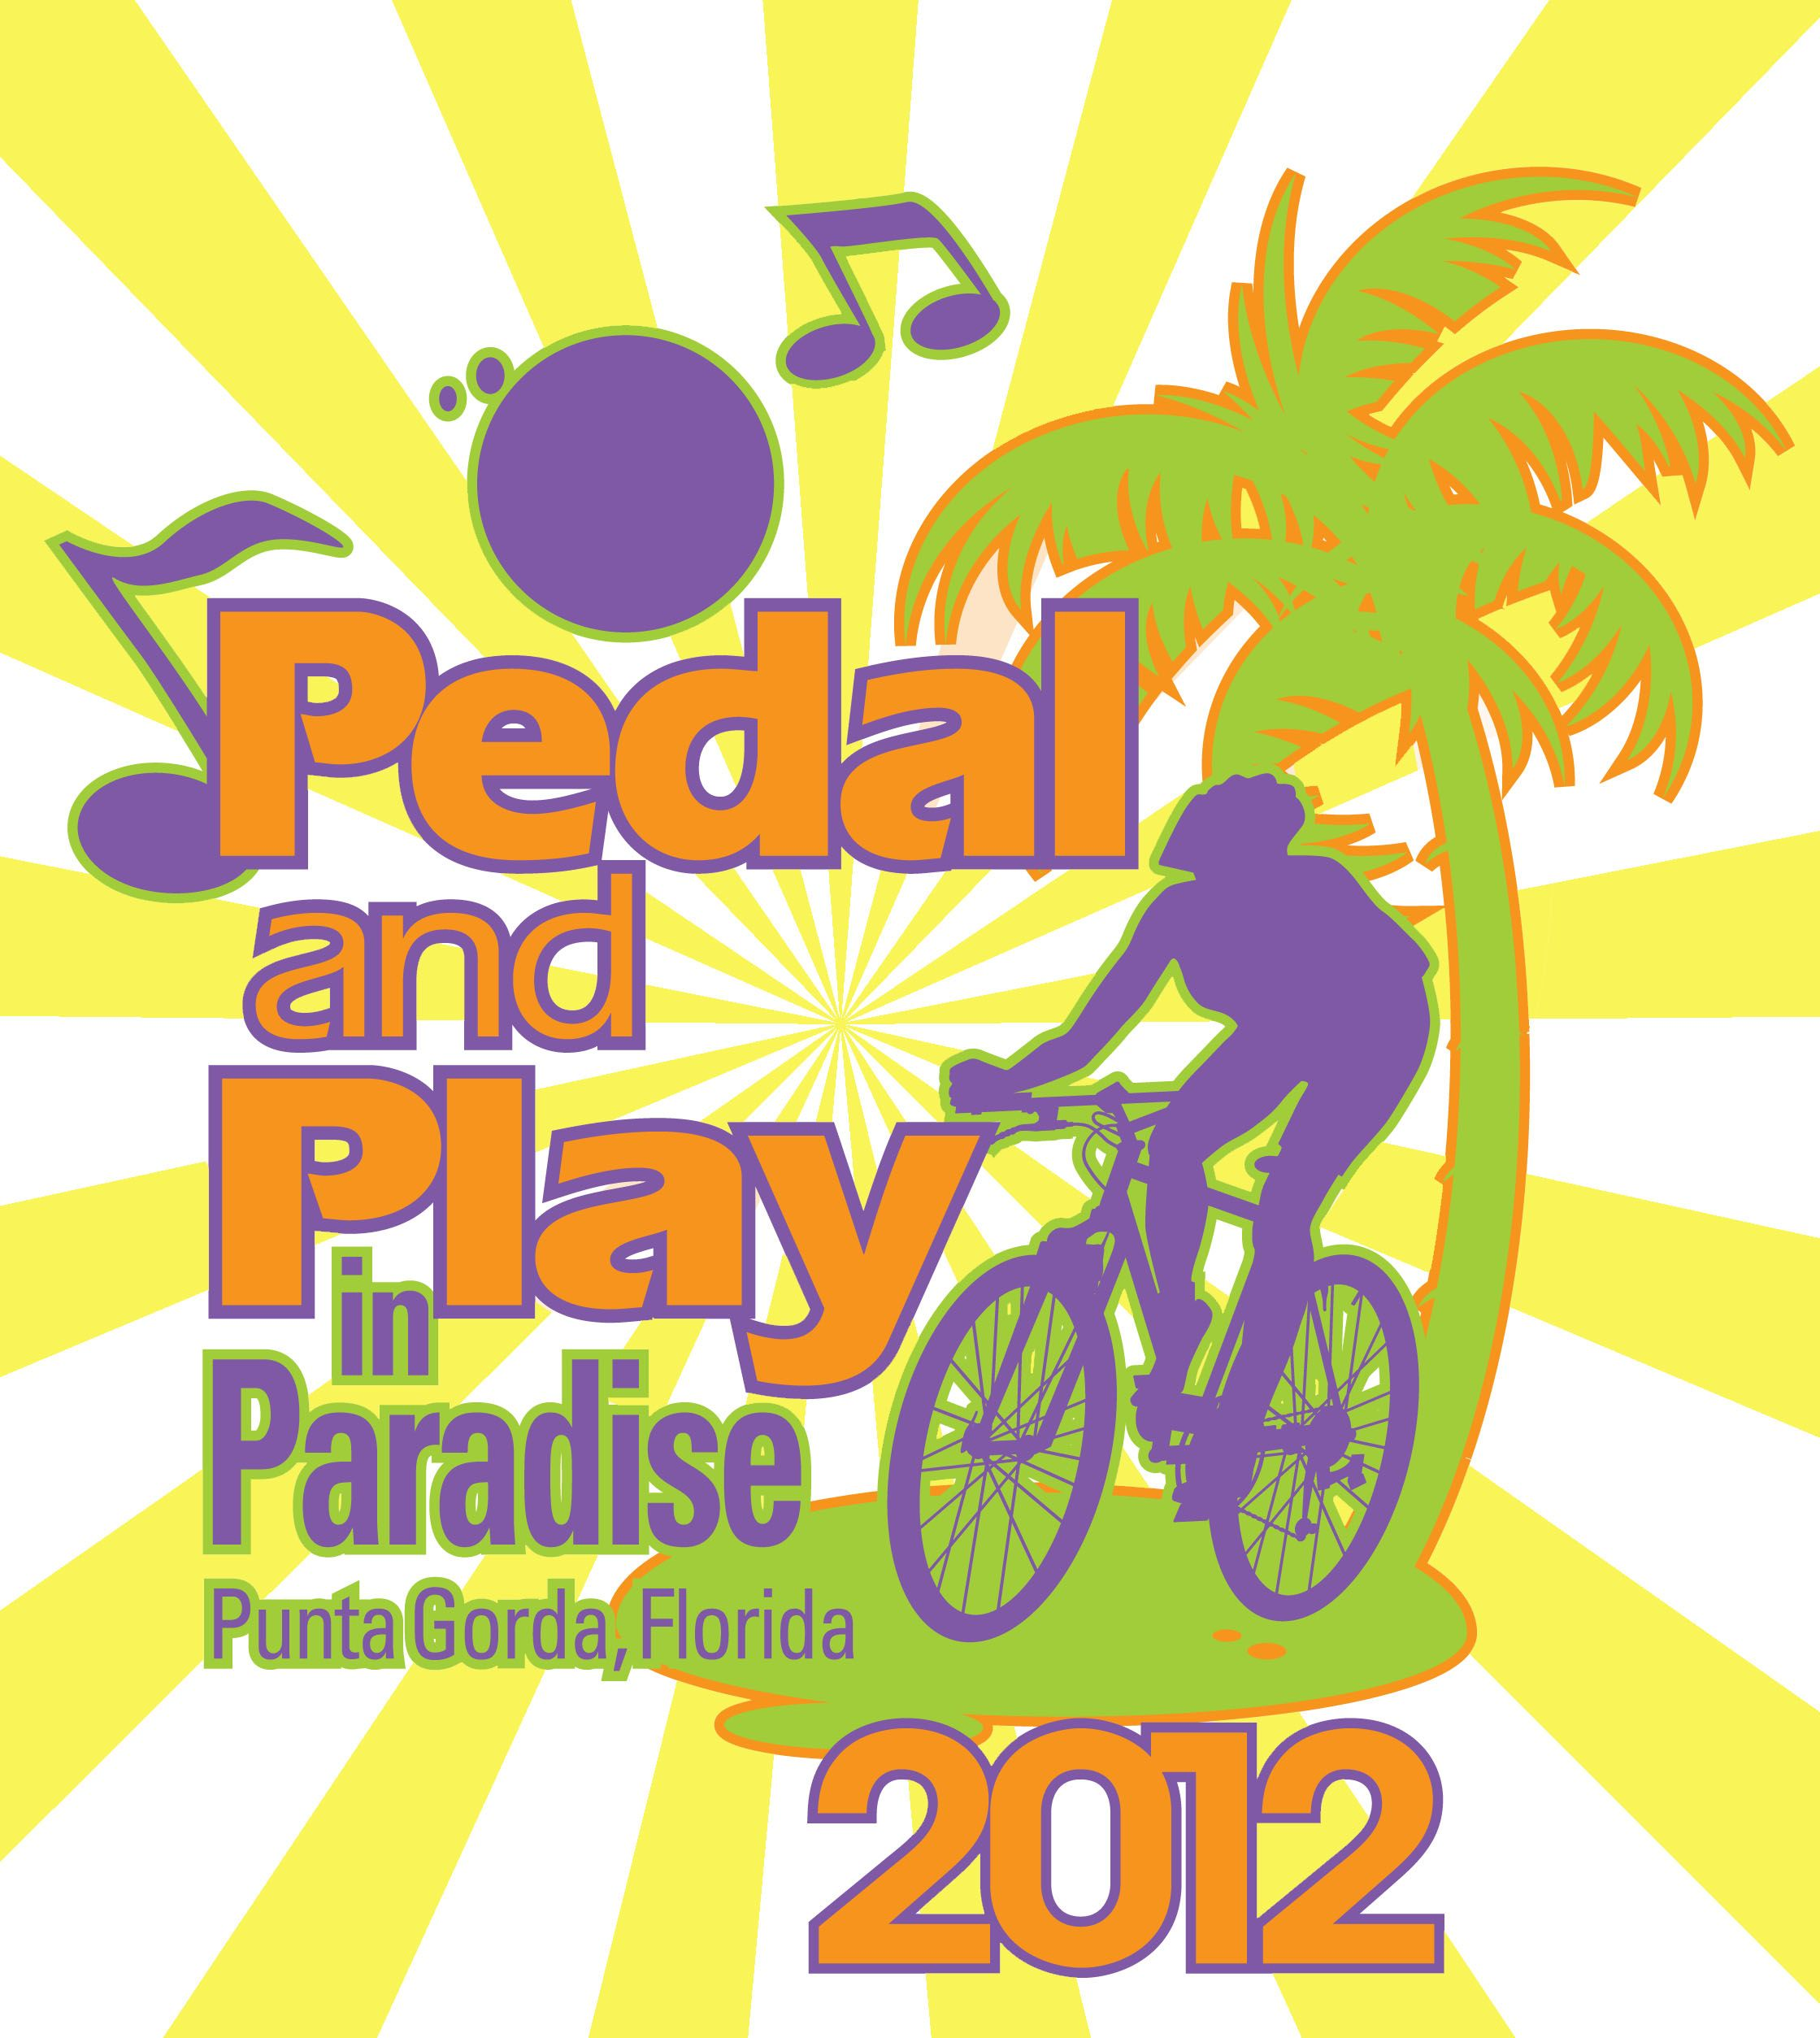 Pedal and Play in Paradise logo